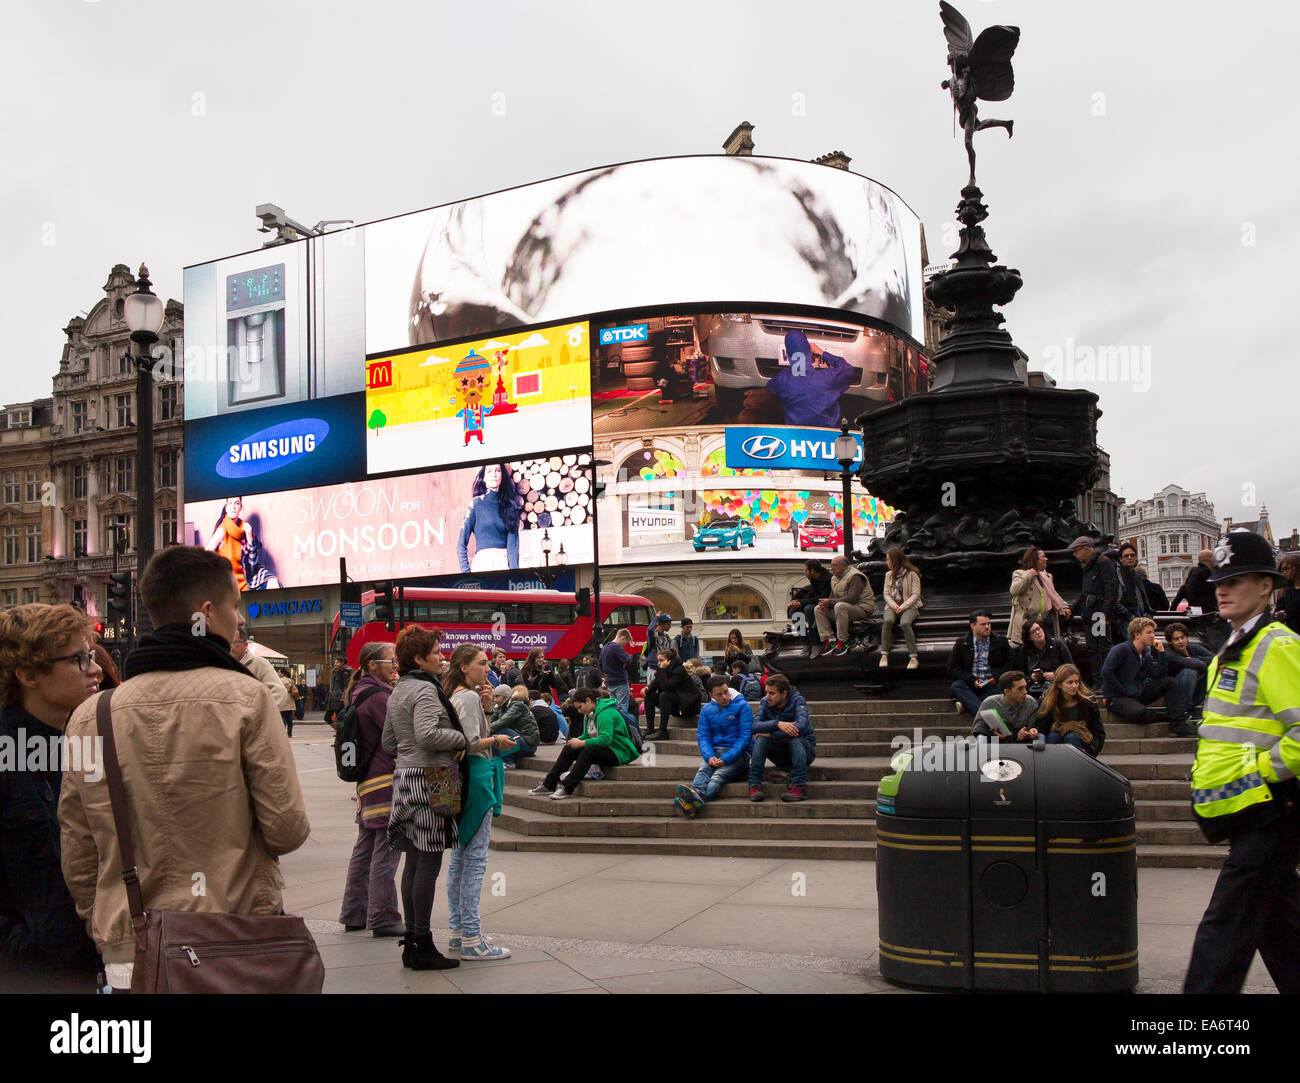 Tourists and a single police officer at Piccadilly Circus London - Stock Image